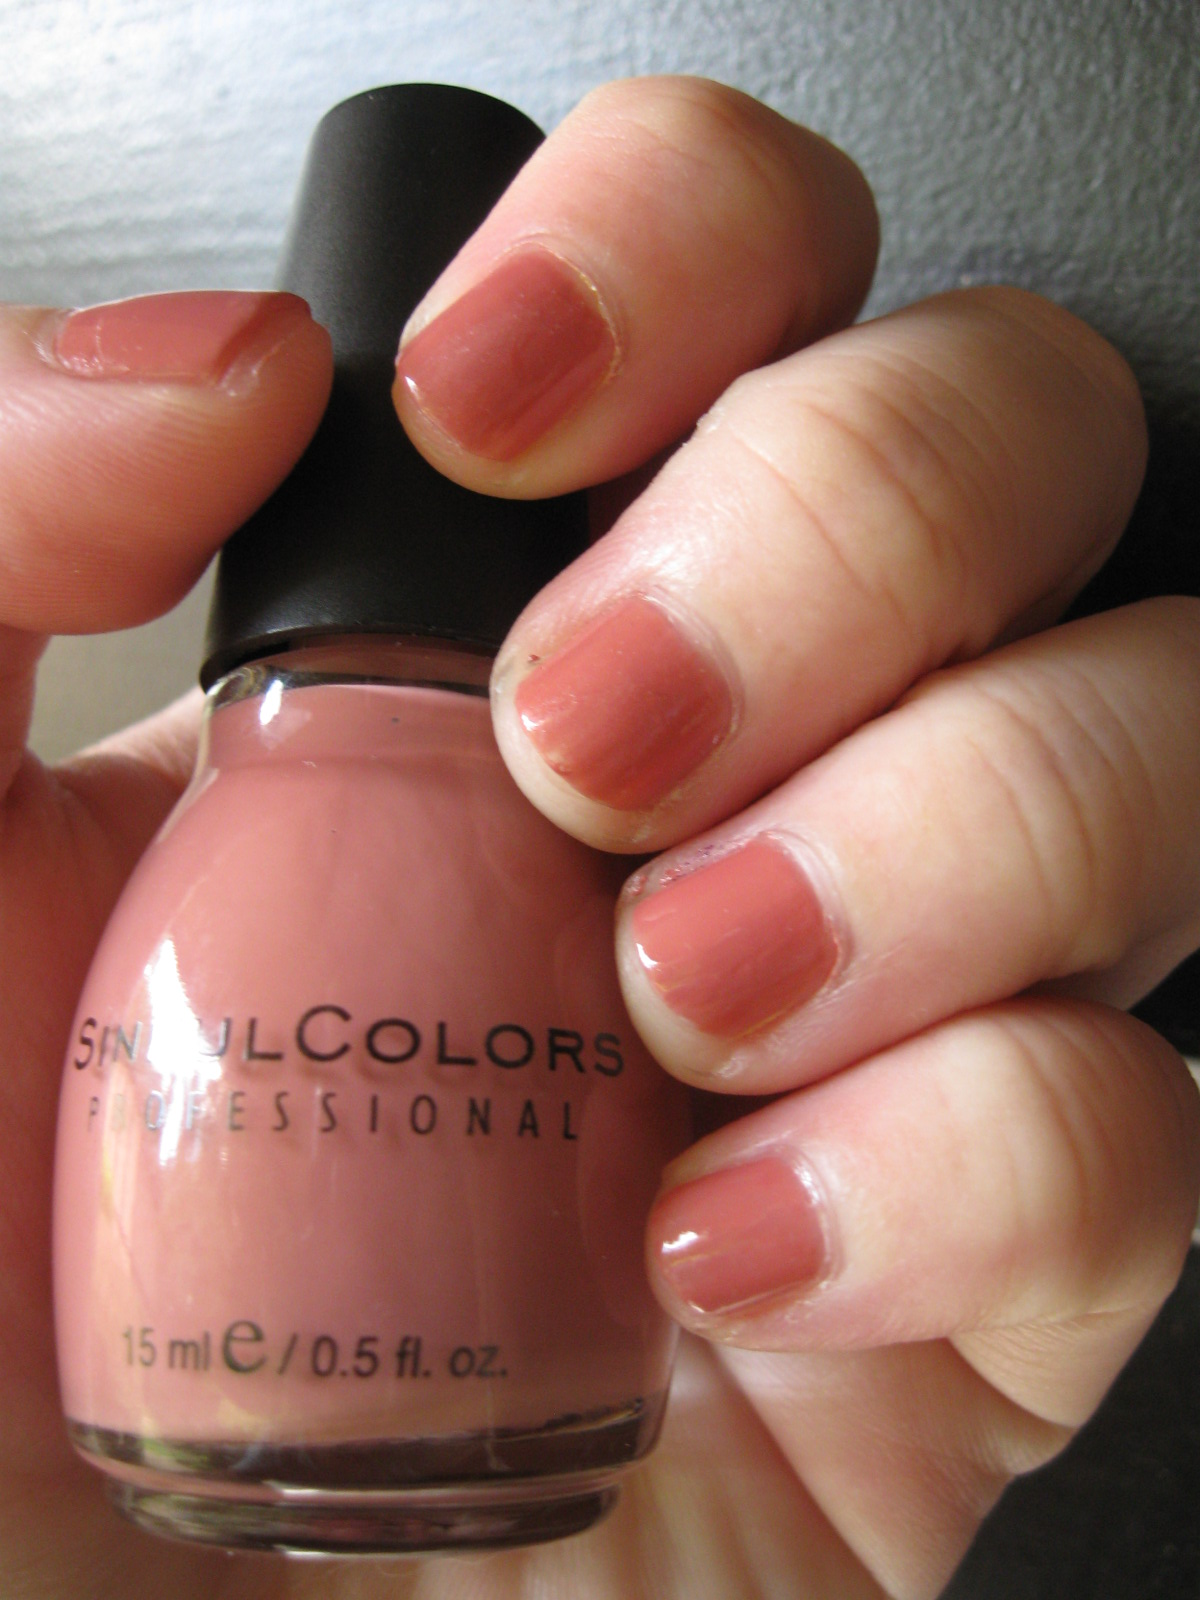 Sinful Colors Nail Polish in Vacation Time: Say Ahhh!